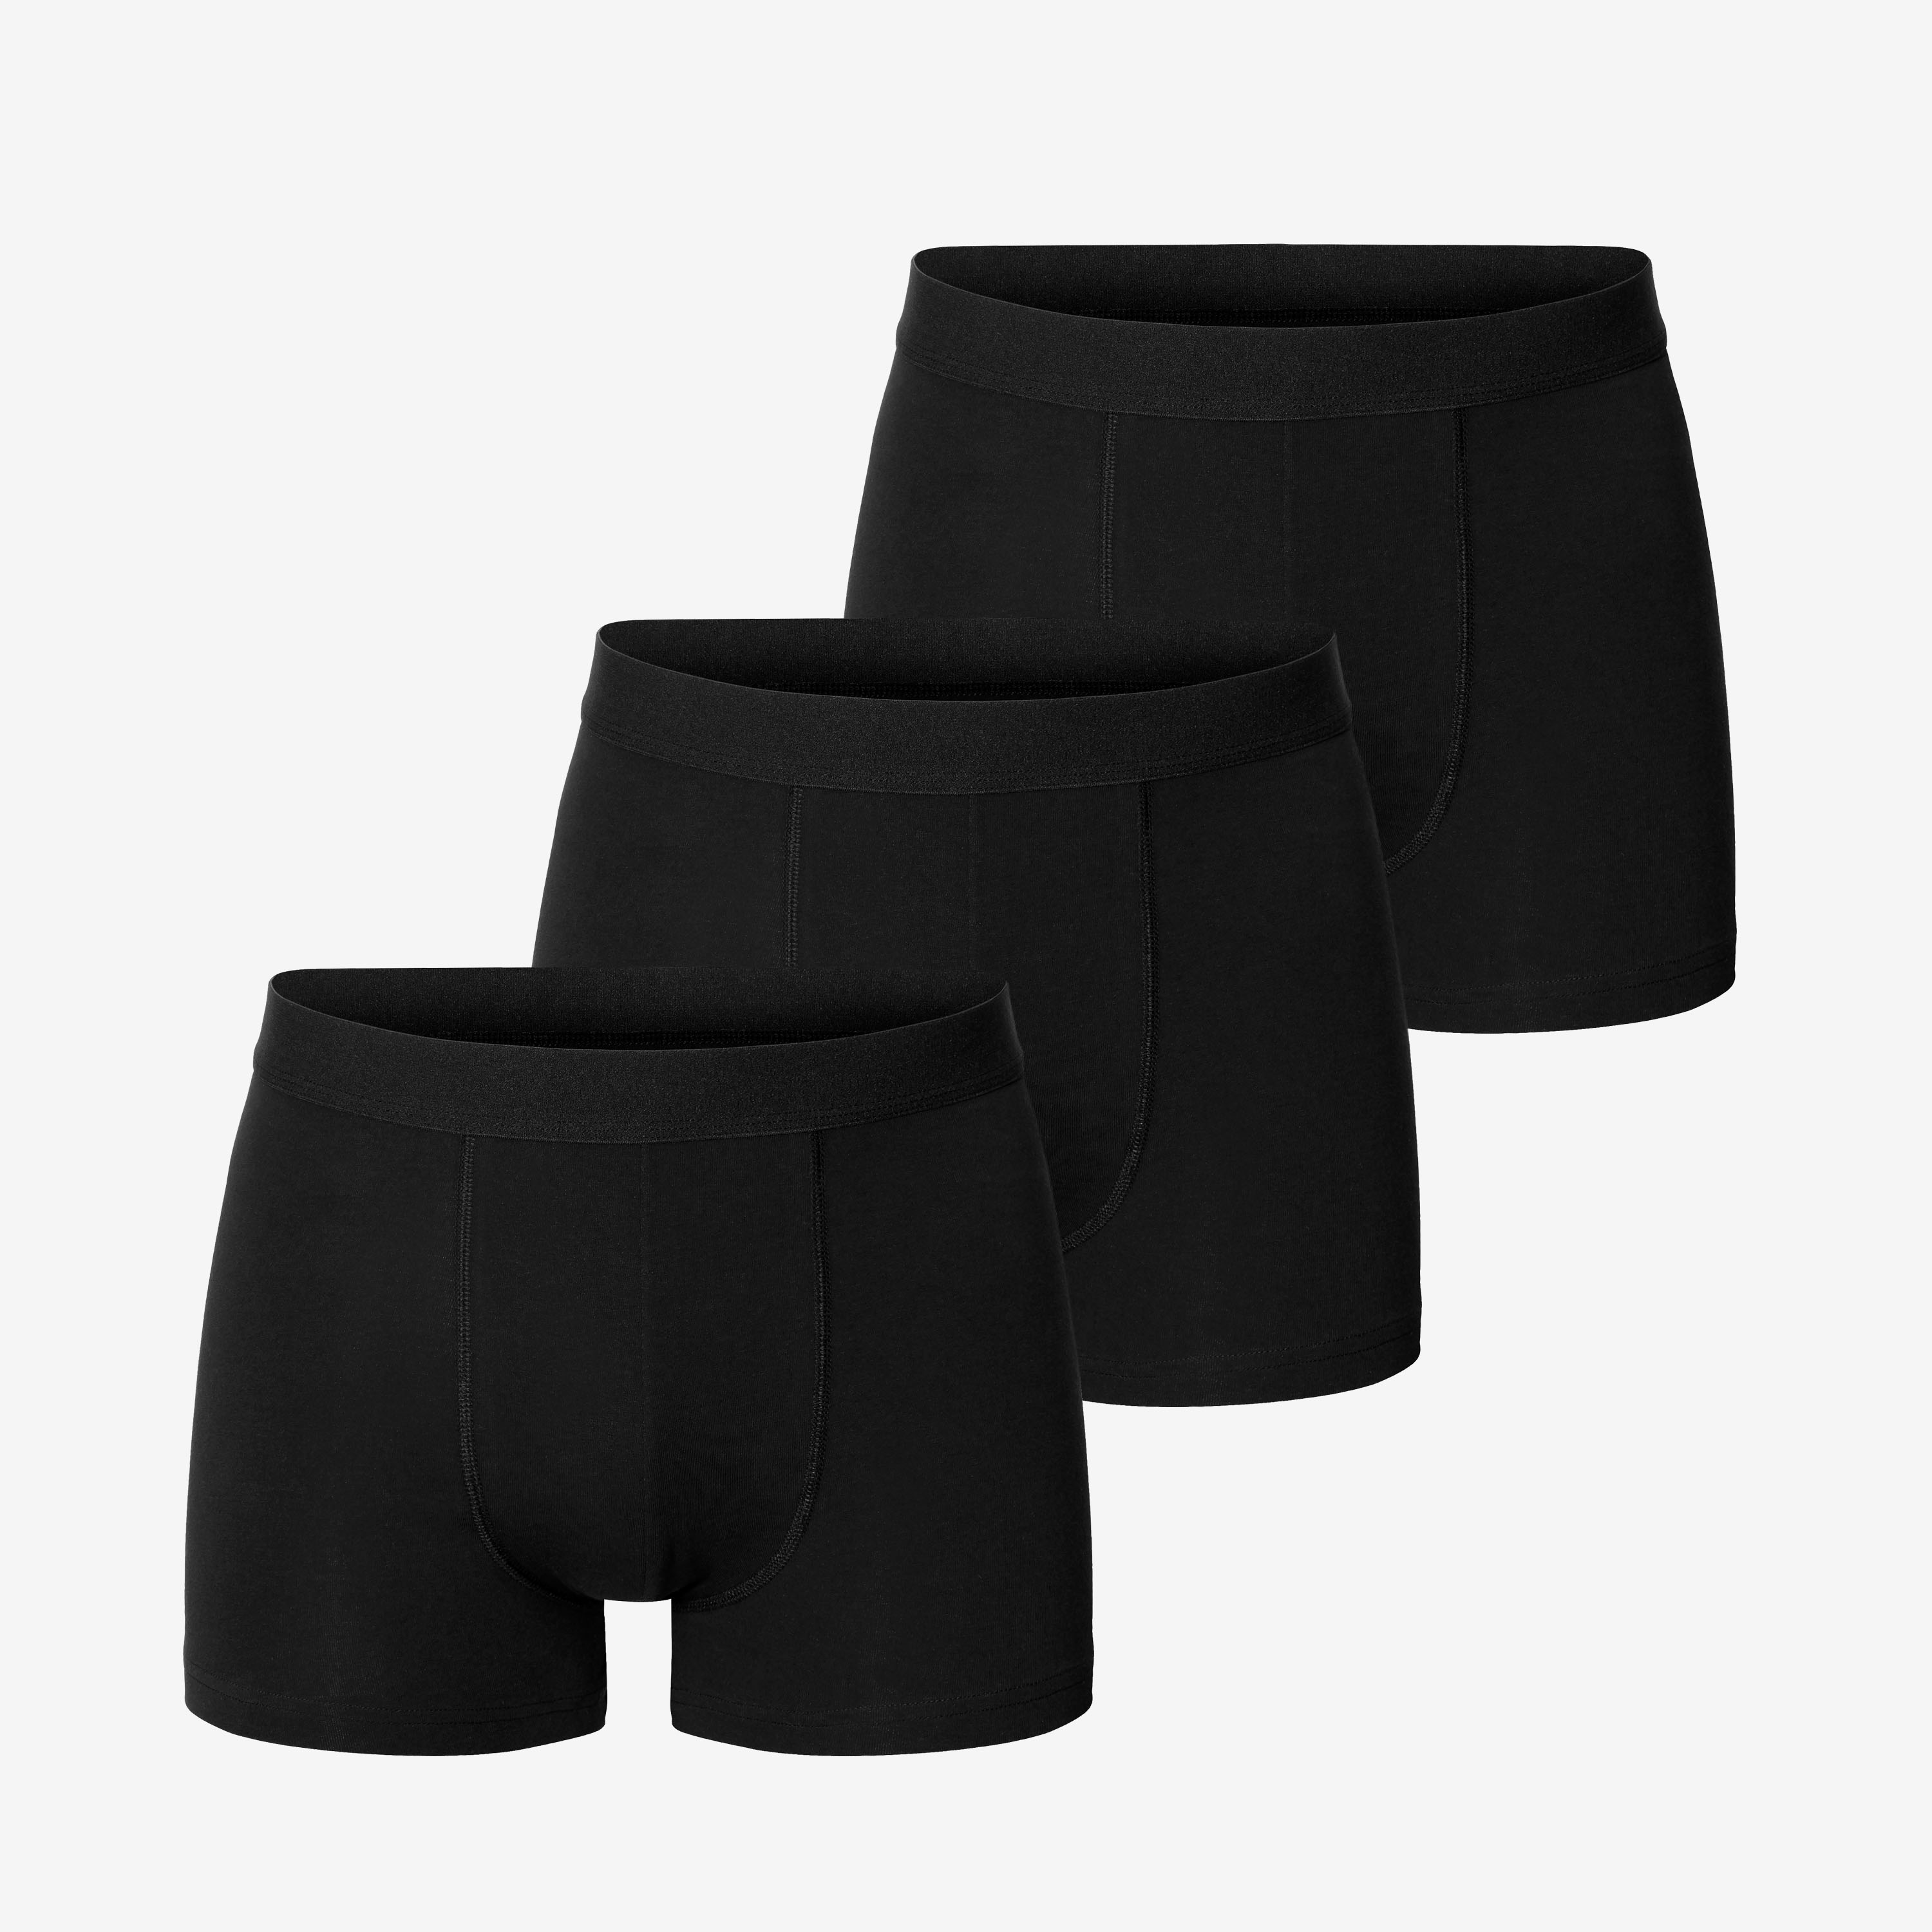 232202-3_Man_Boxer-Brief_black_CO